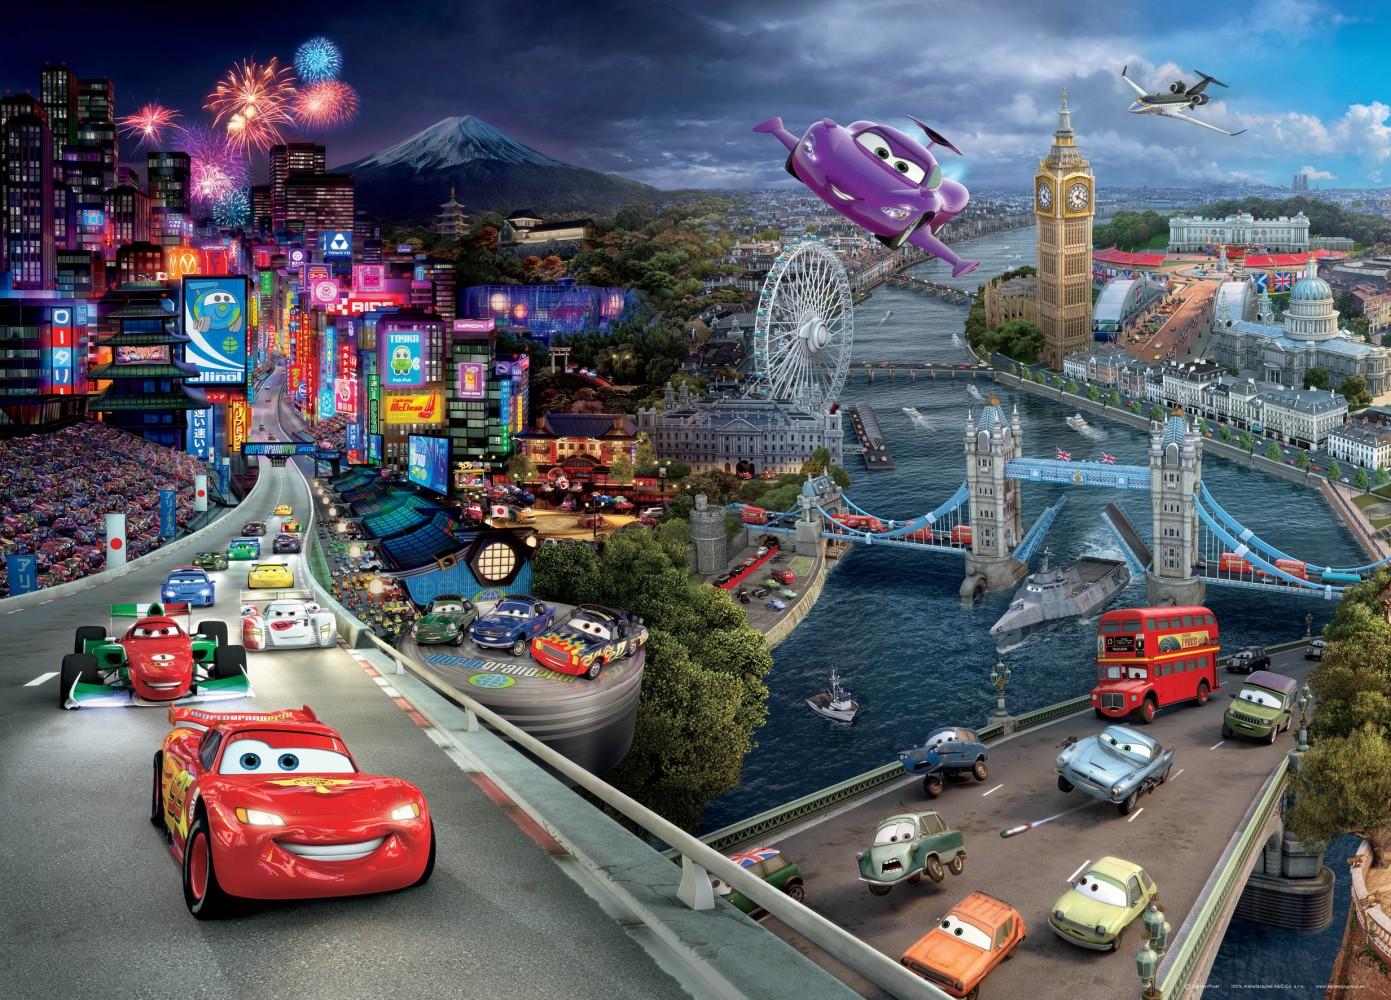 Xxl poster wall mural wallpaper disney pixxar cars 2 cars for Disney cars wall mural